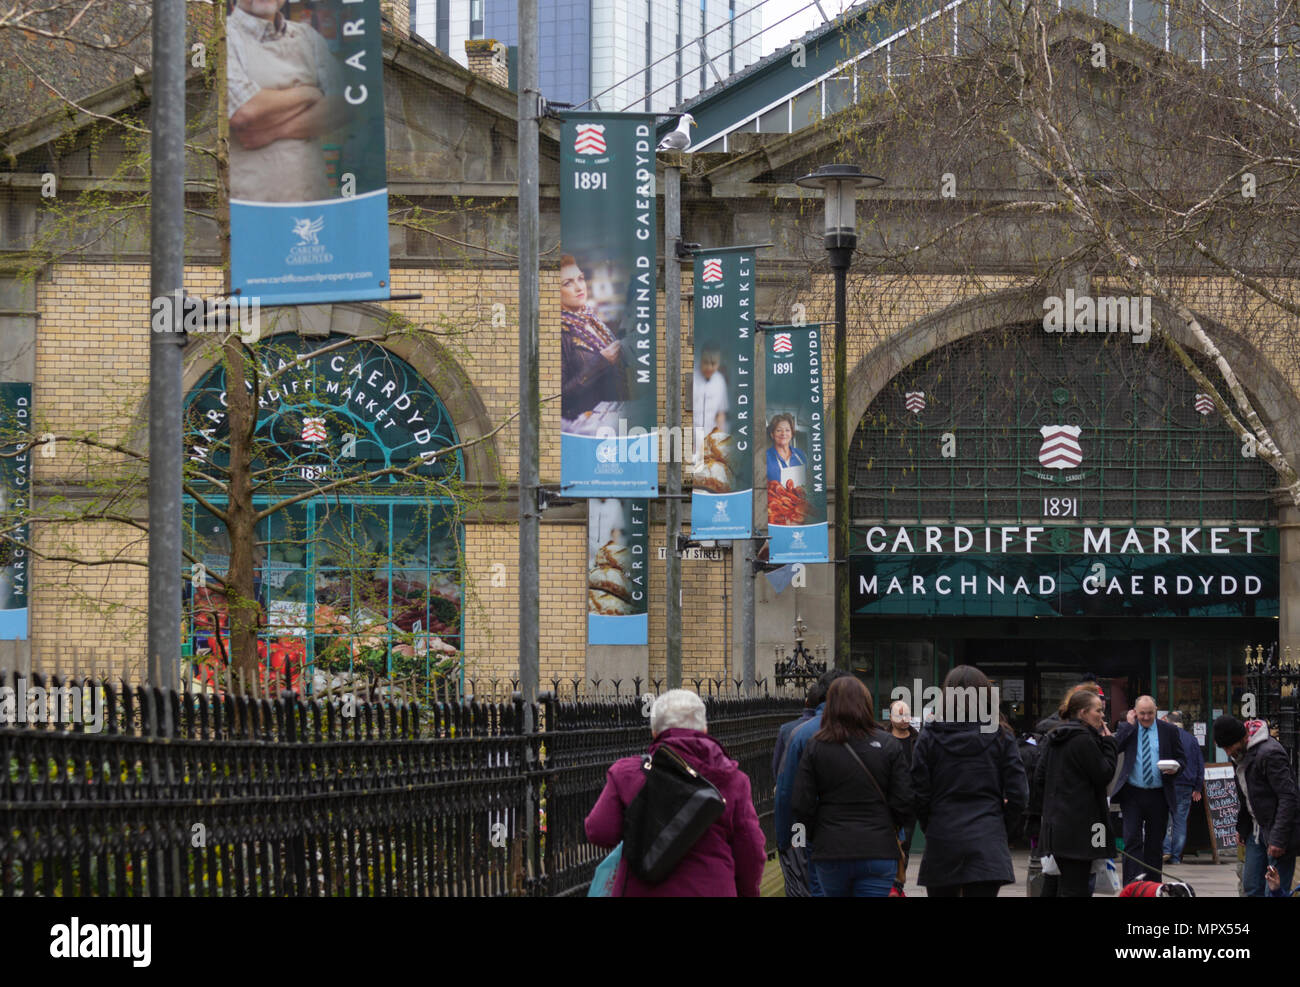 Shoppers, Cardiff Market, Cardiff town centre, Cardiff. - Stock Image